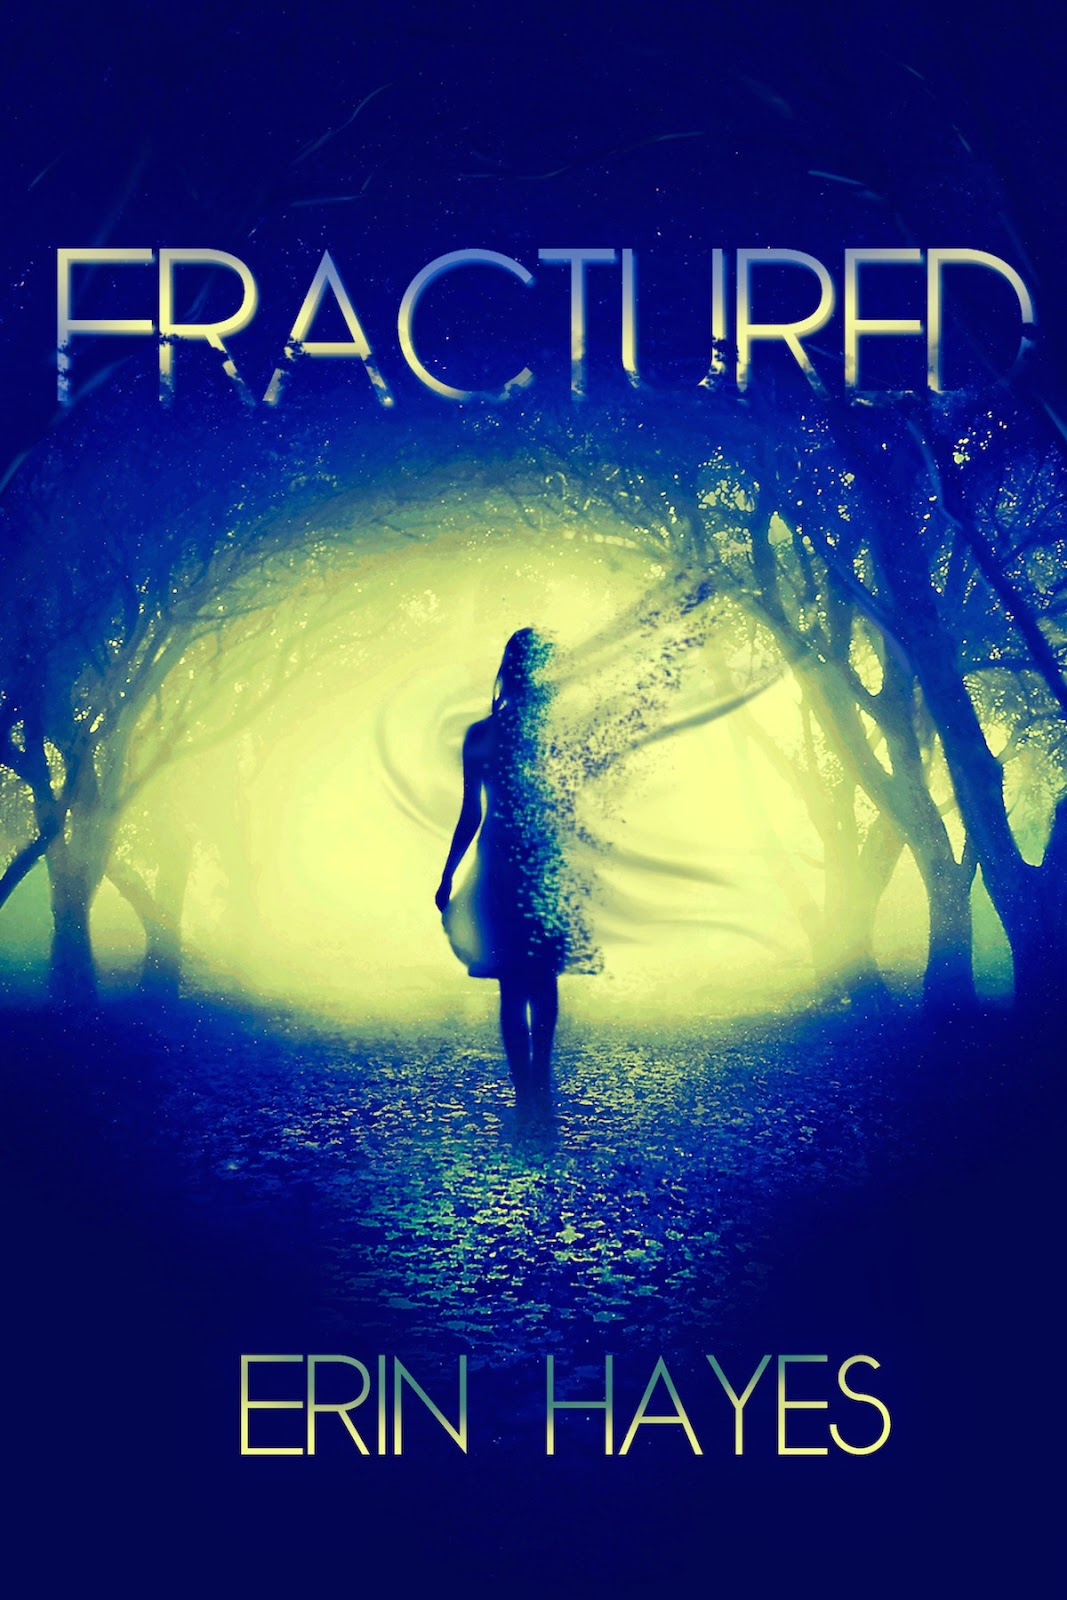 https://www.goodreads.com/book/show/21865341-fractured?ac=1